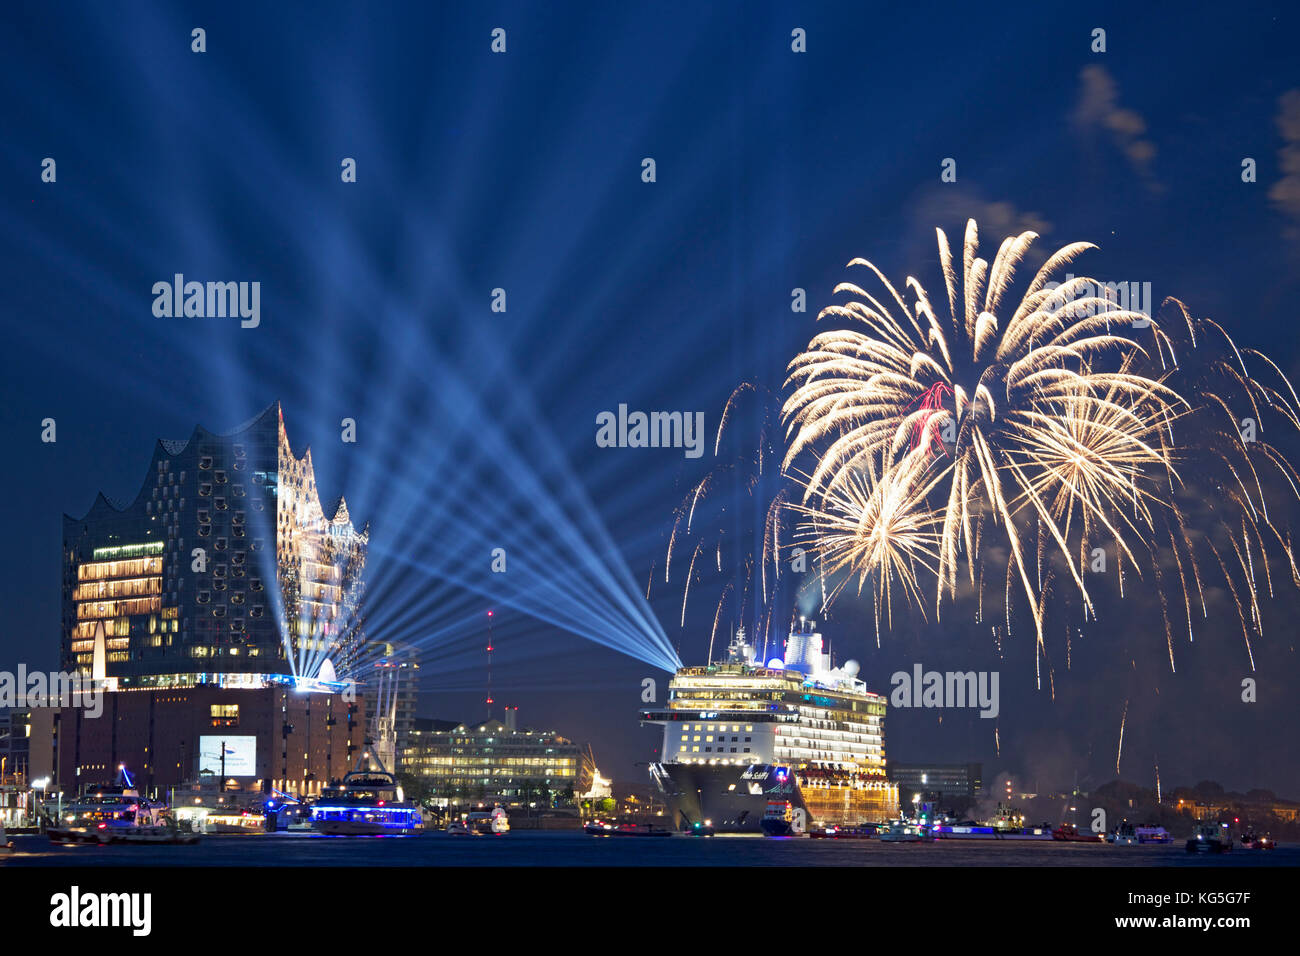 Baptism 'Mein Schiff 6' on the 1st of June, 2017 in front of the Elbphilharmonie with light show and fireworks - Stock Image